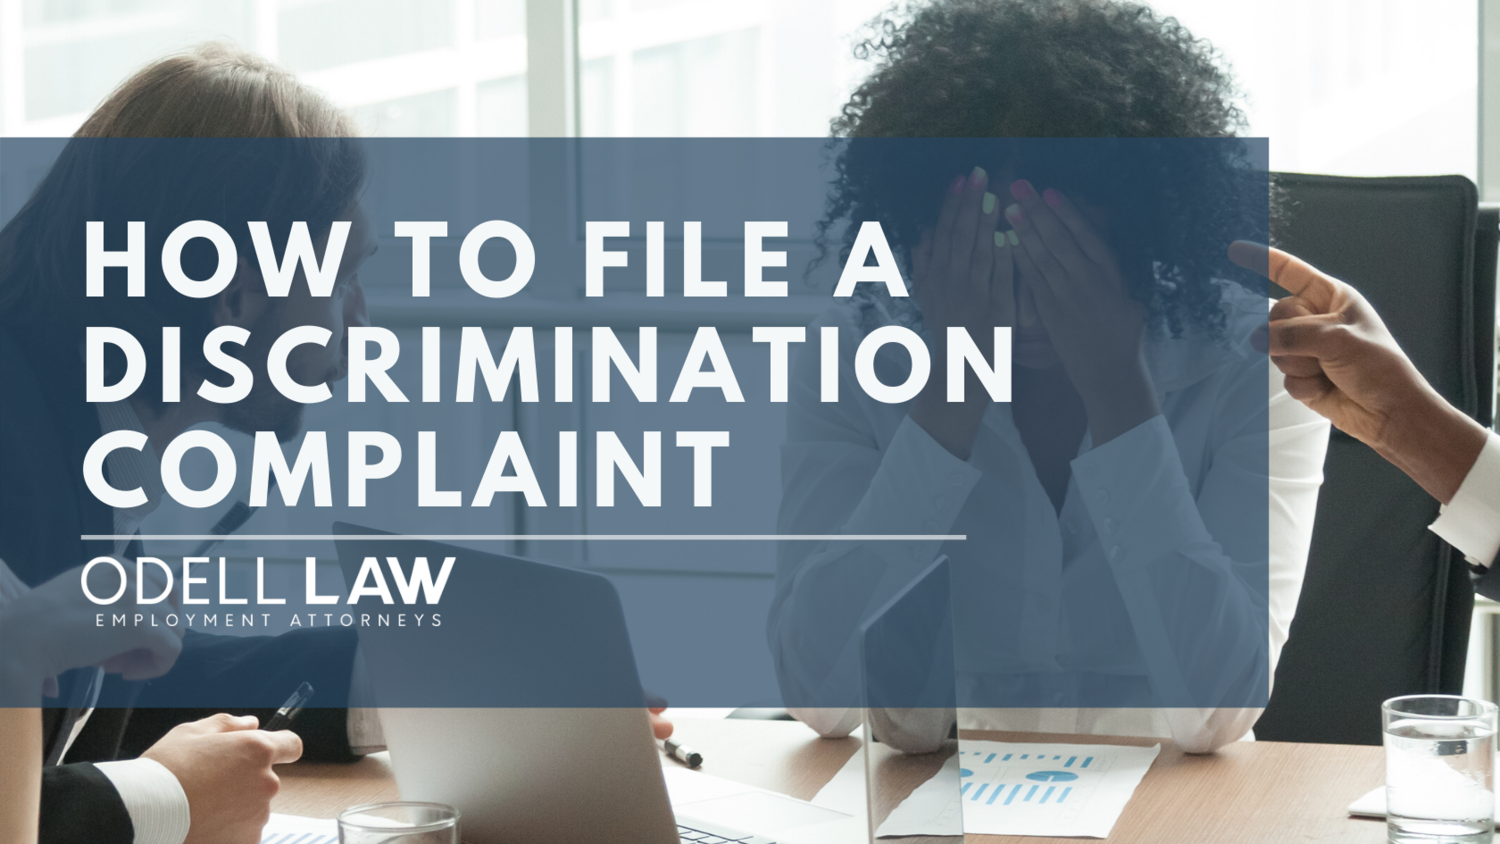 Is Workplace Discrimination Illegal? Yes